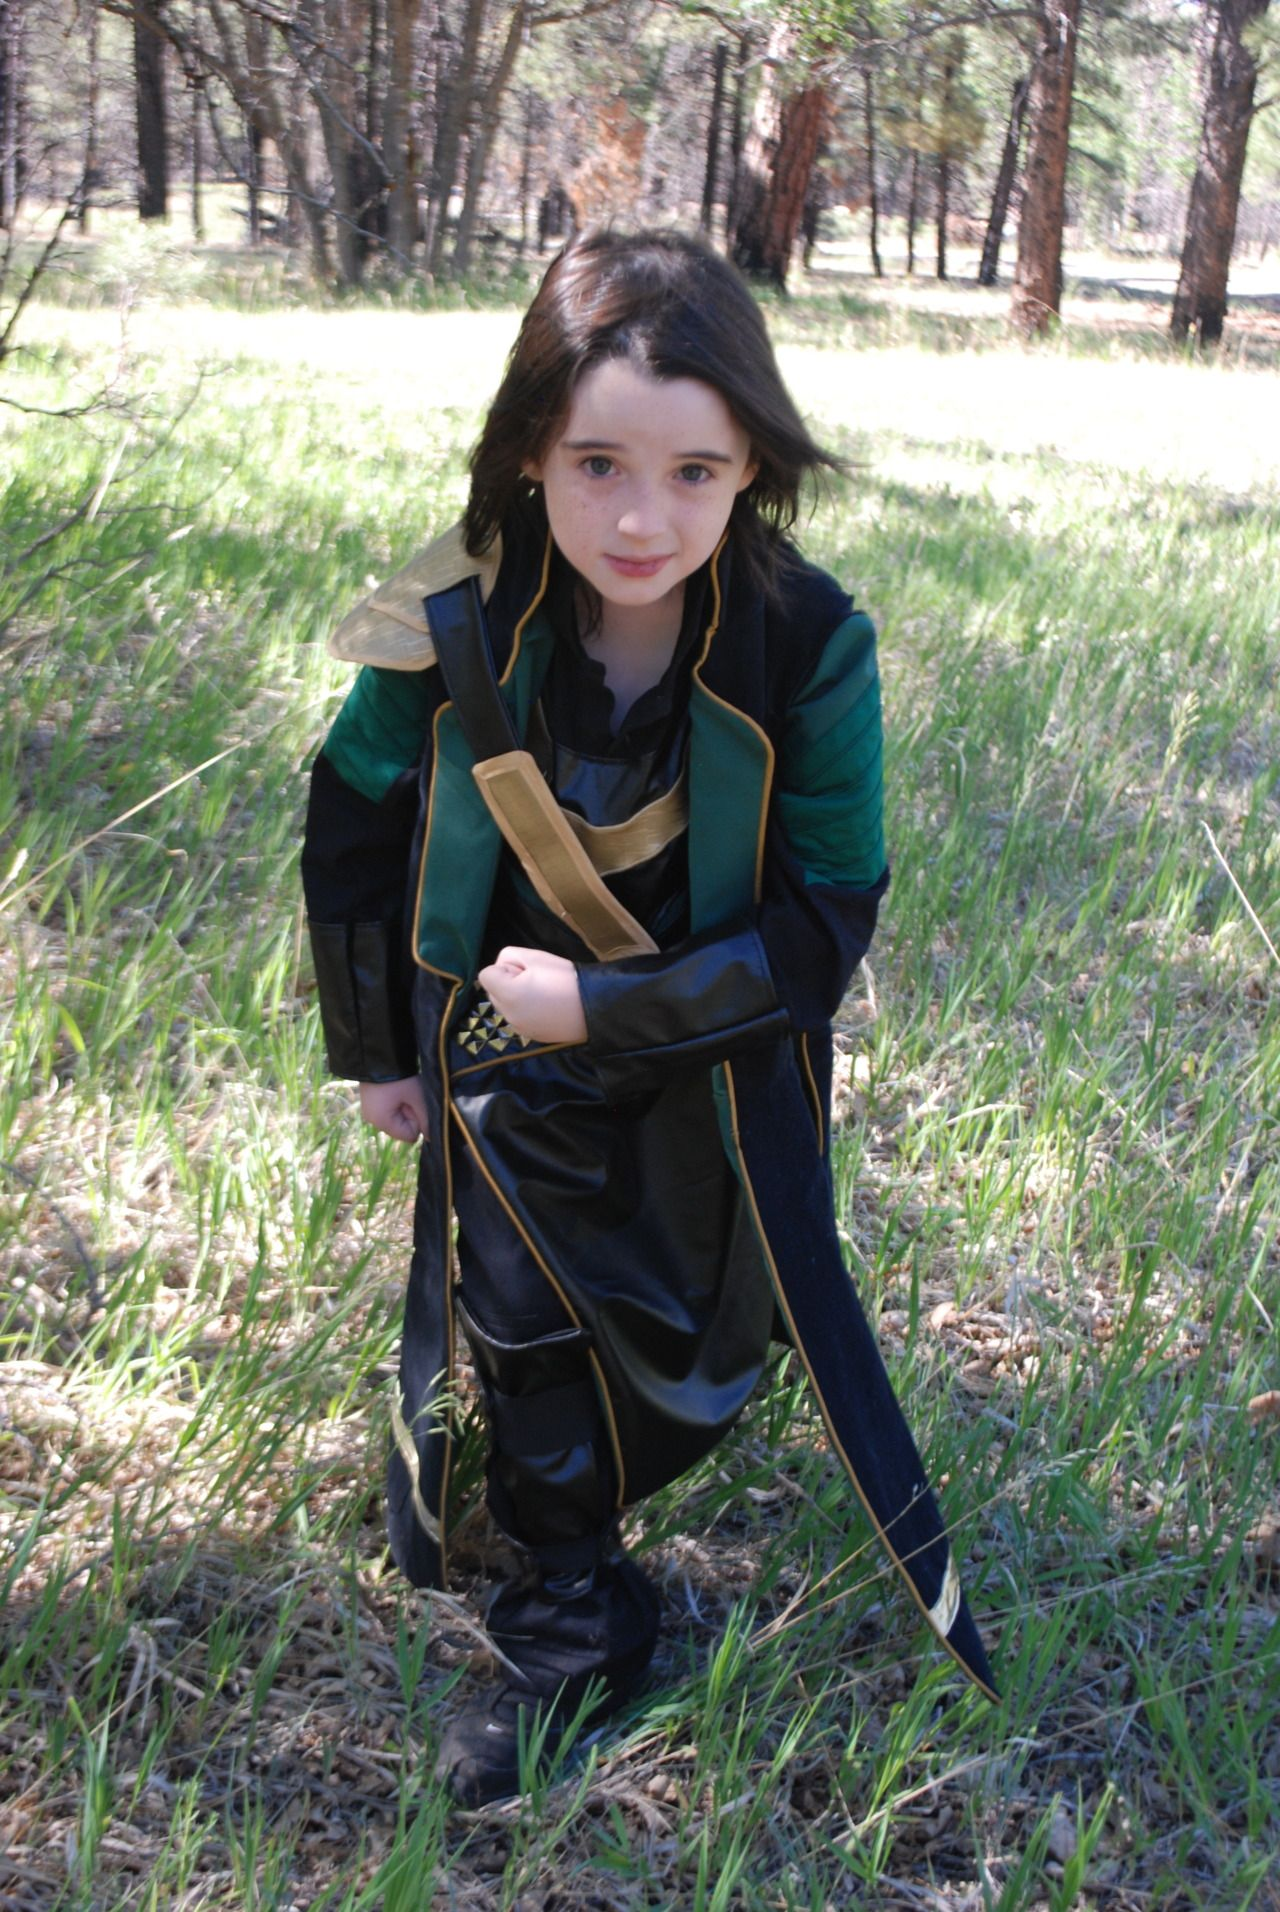 From a set of kids dressed as avengers.... //gimmeawristband.tumblr.com/post/24880796546# welcome baby to cnn after dark tauriice Little Loki was ...  sc 1 st  Pinterest & From a set of kids dressed as avengers.... http://gimmeawristband ...